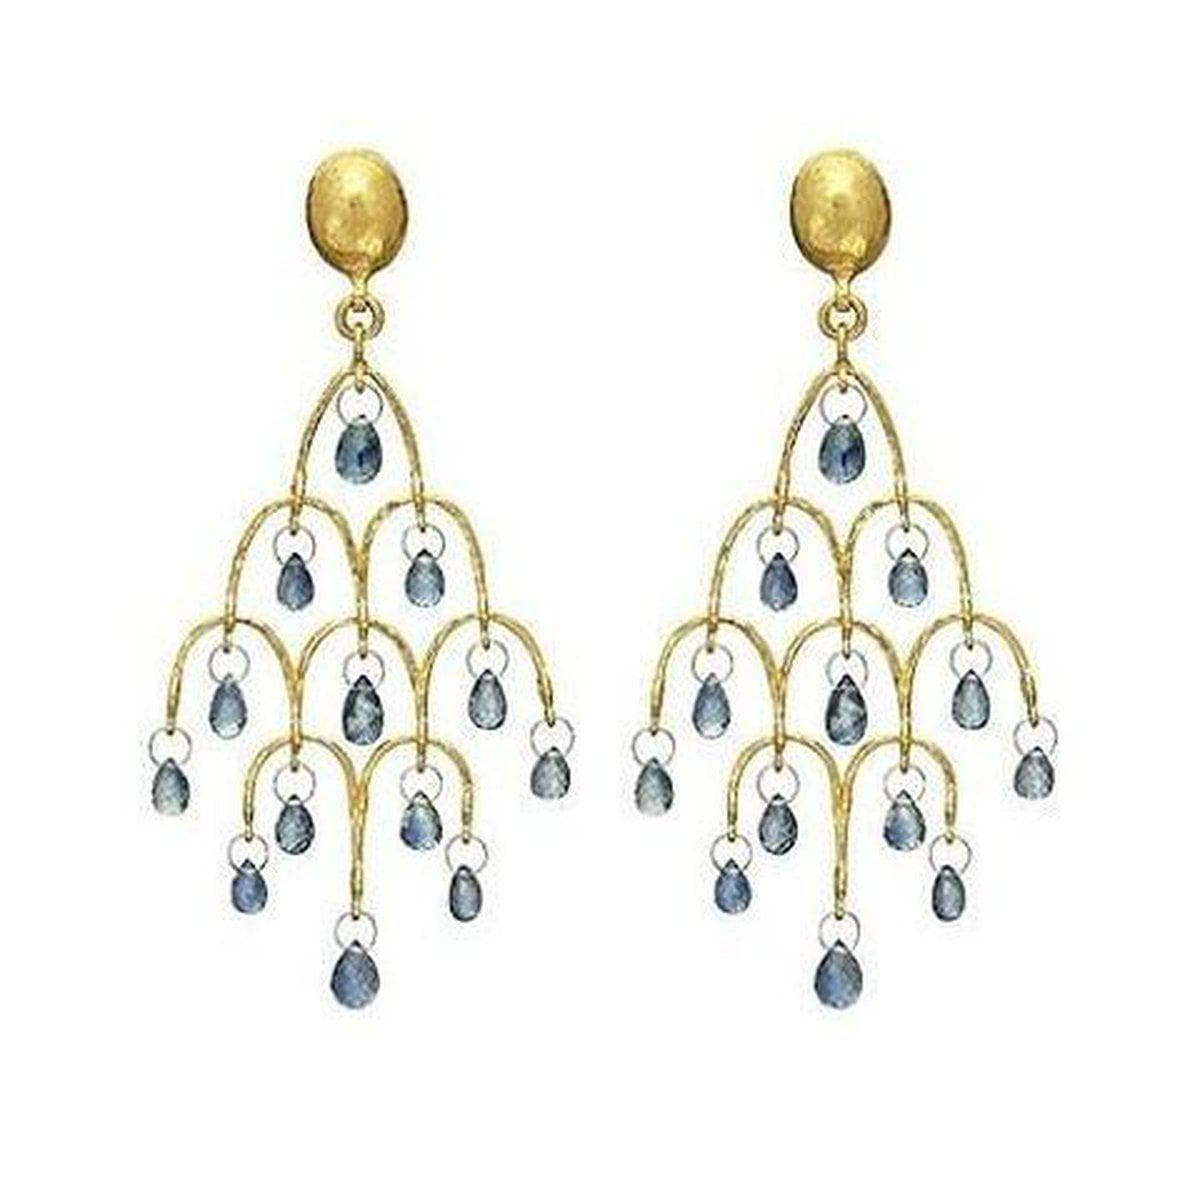 Delicate Dew 24K Gold Sapphire Earrings - E-CHDL-FSB-BL-L-97JT-GURHAN-Renee Taylor Gallery